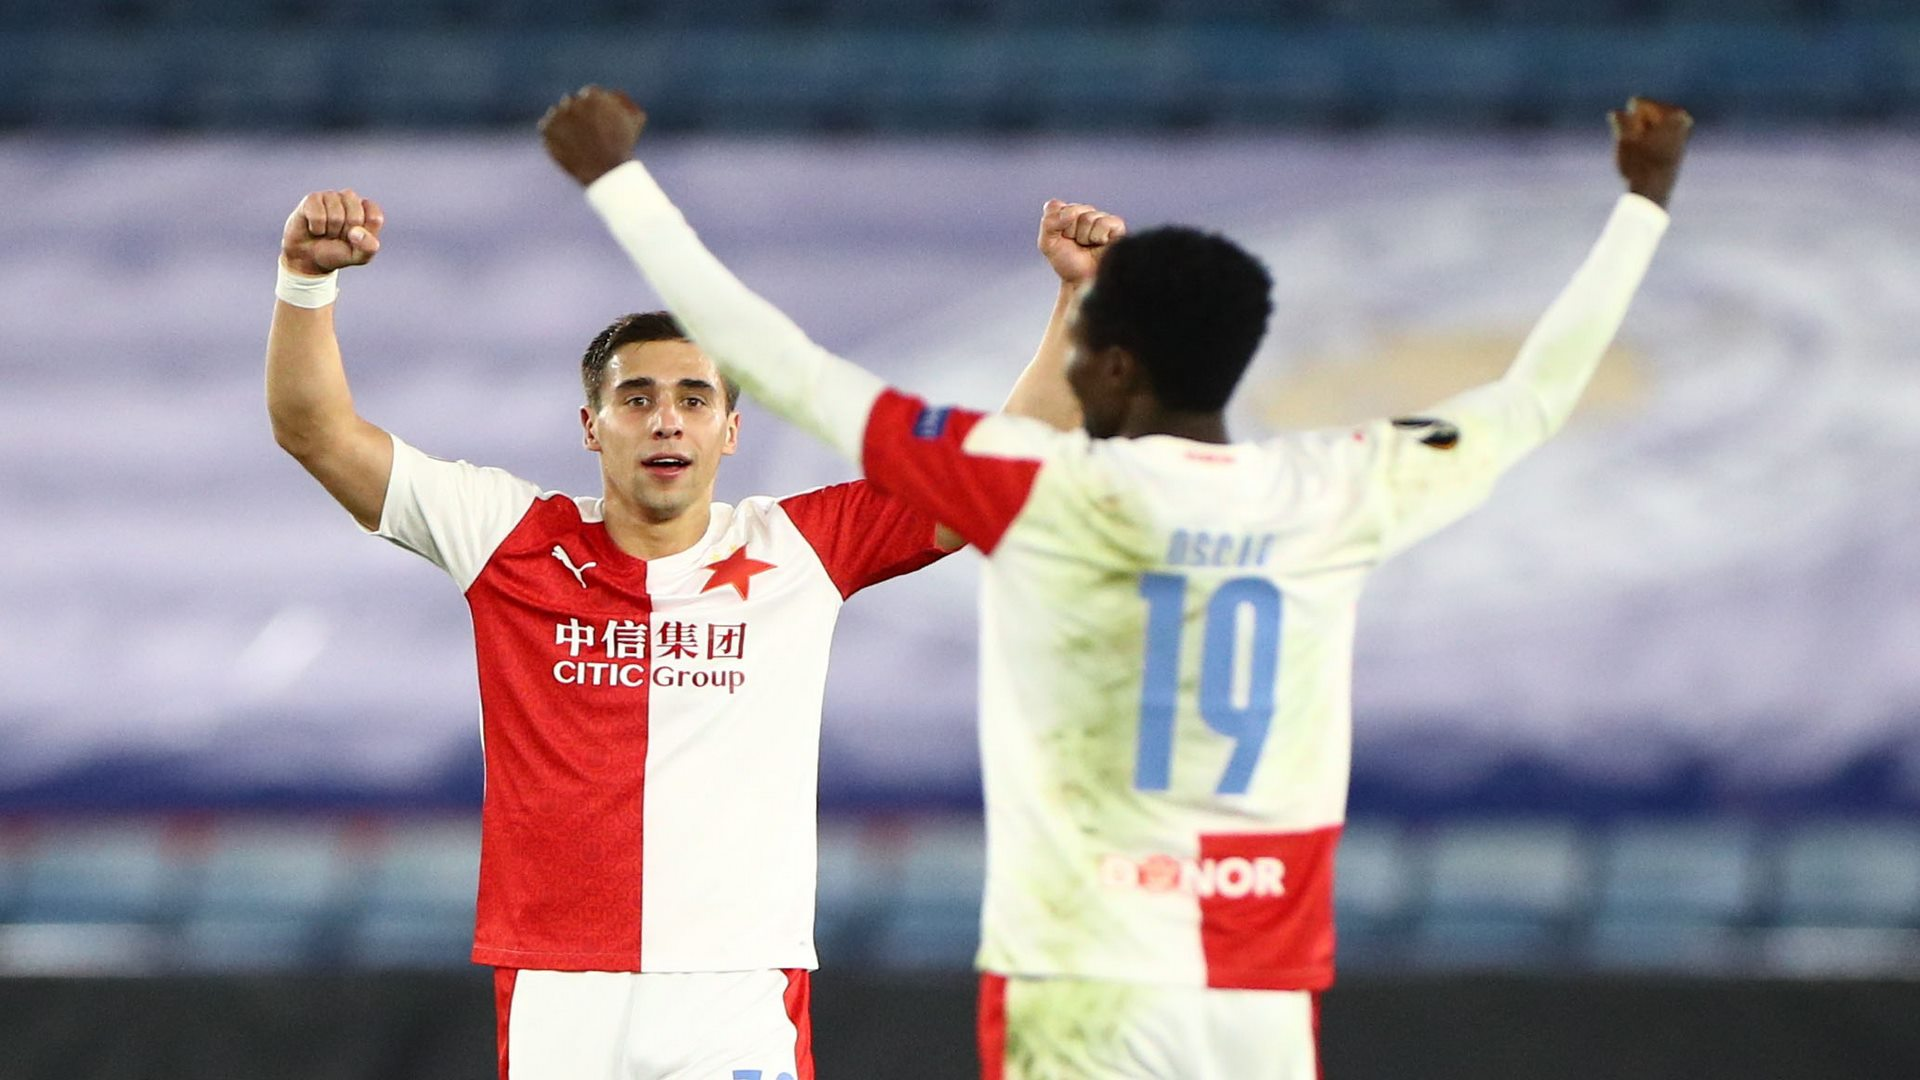 Soccer Football - Europa League - Round of 32 Second Leg - Leicester City v Slavia Prague - King Power Stadium, Leicester, Britain - February 25, 2021 Slavia Prague's Ondrej Lingr and Oscar Dorley celebrate after the match REUTERS/Hannah Mckay